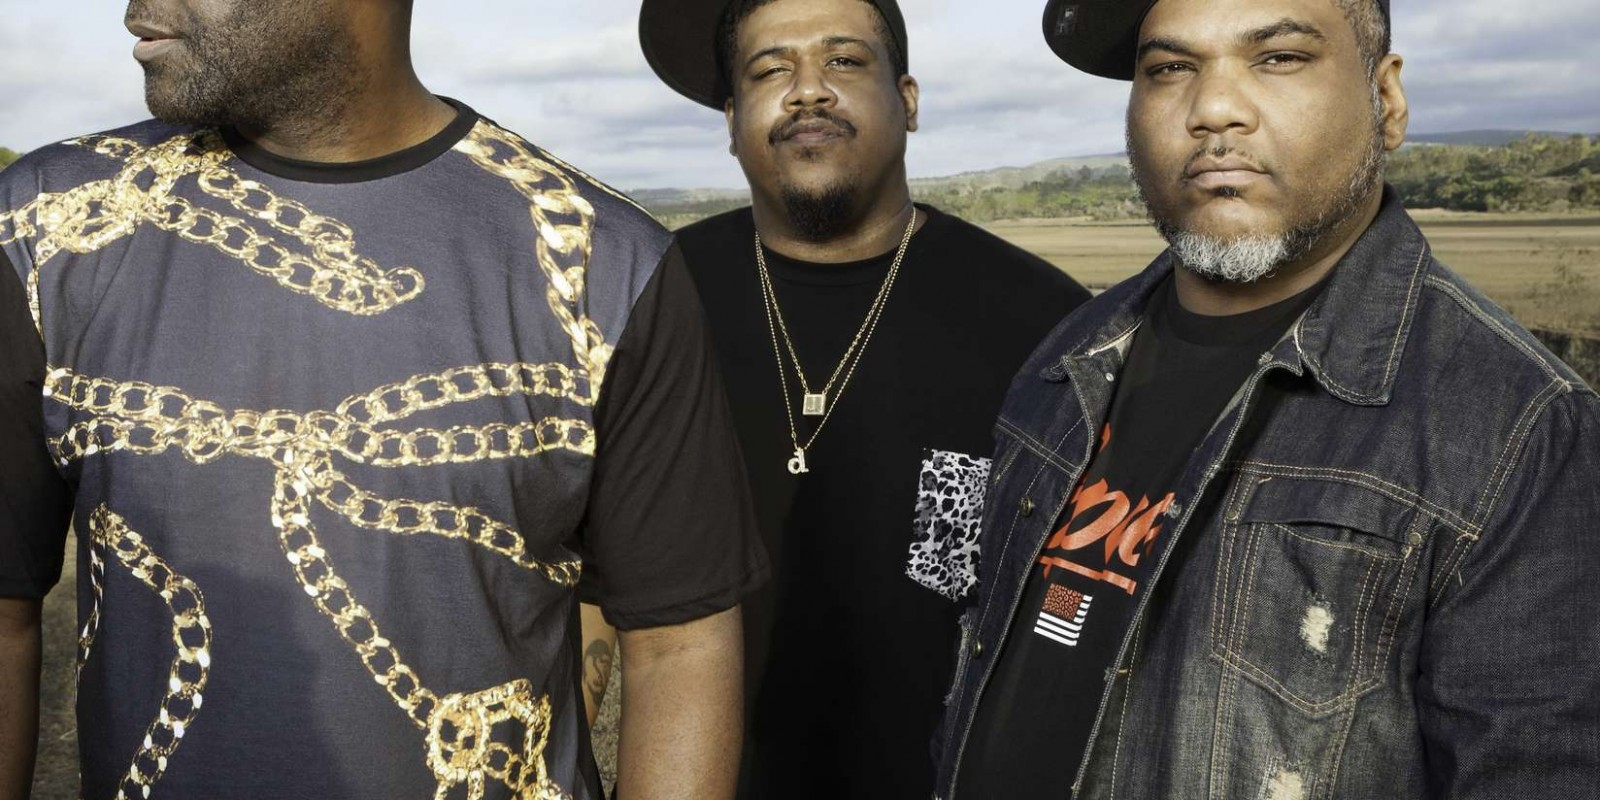 De La Soul Web Images for artist profile